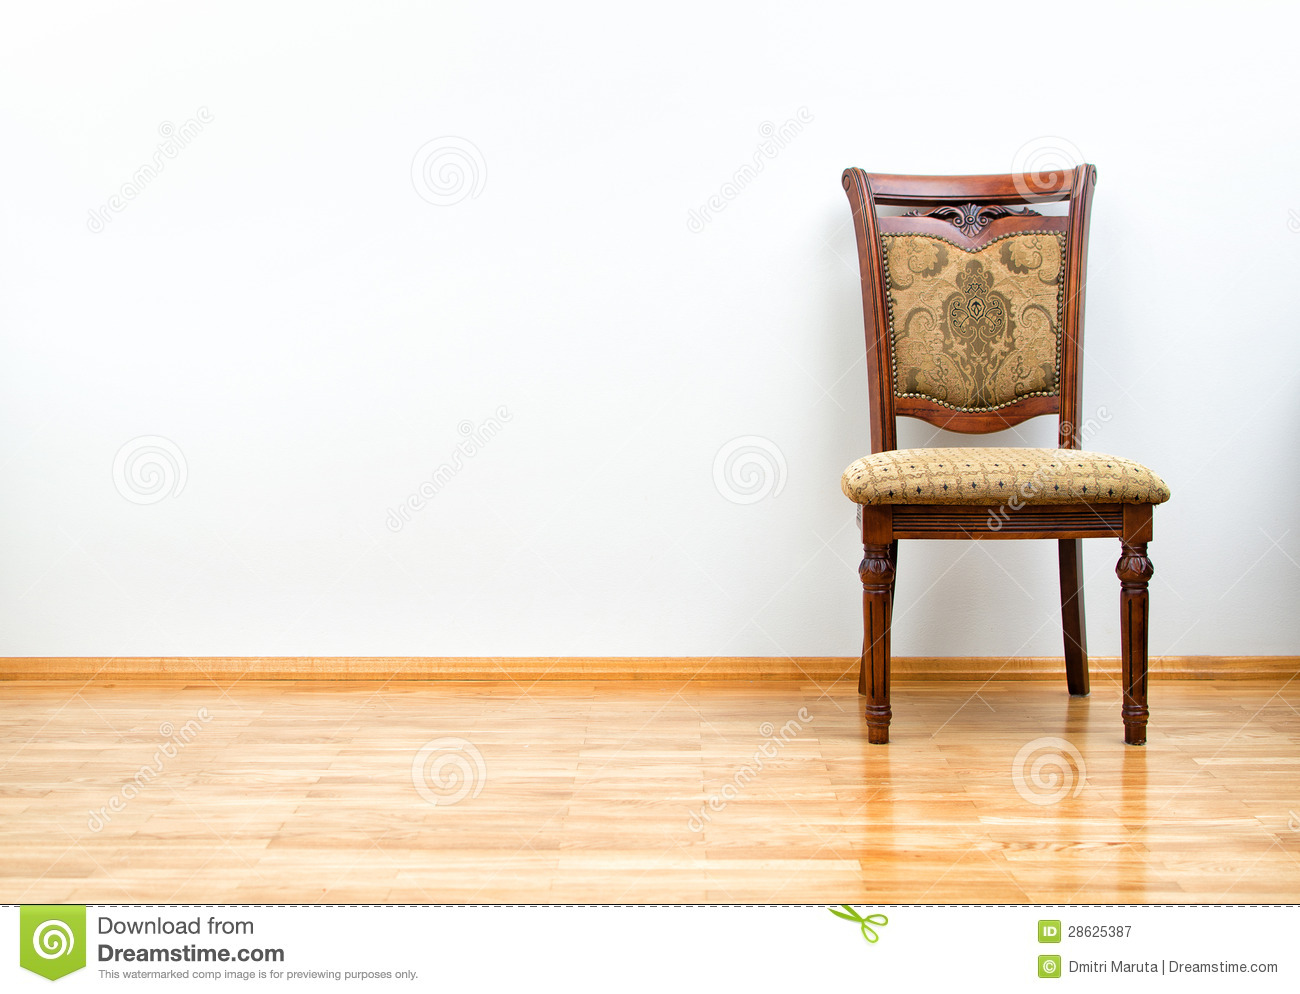 Interior With Classic Chair Stock Image Image Of Furniture Spacious 28625387